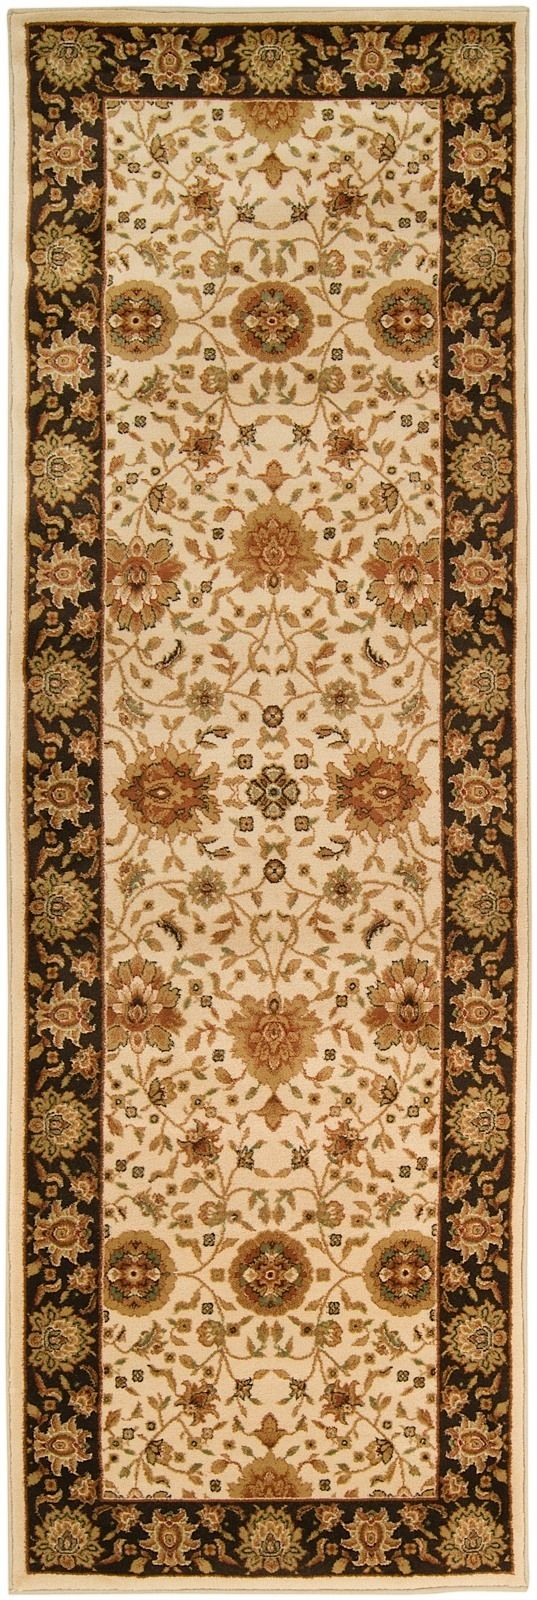 surya earth traditional area rug collection